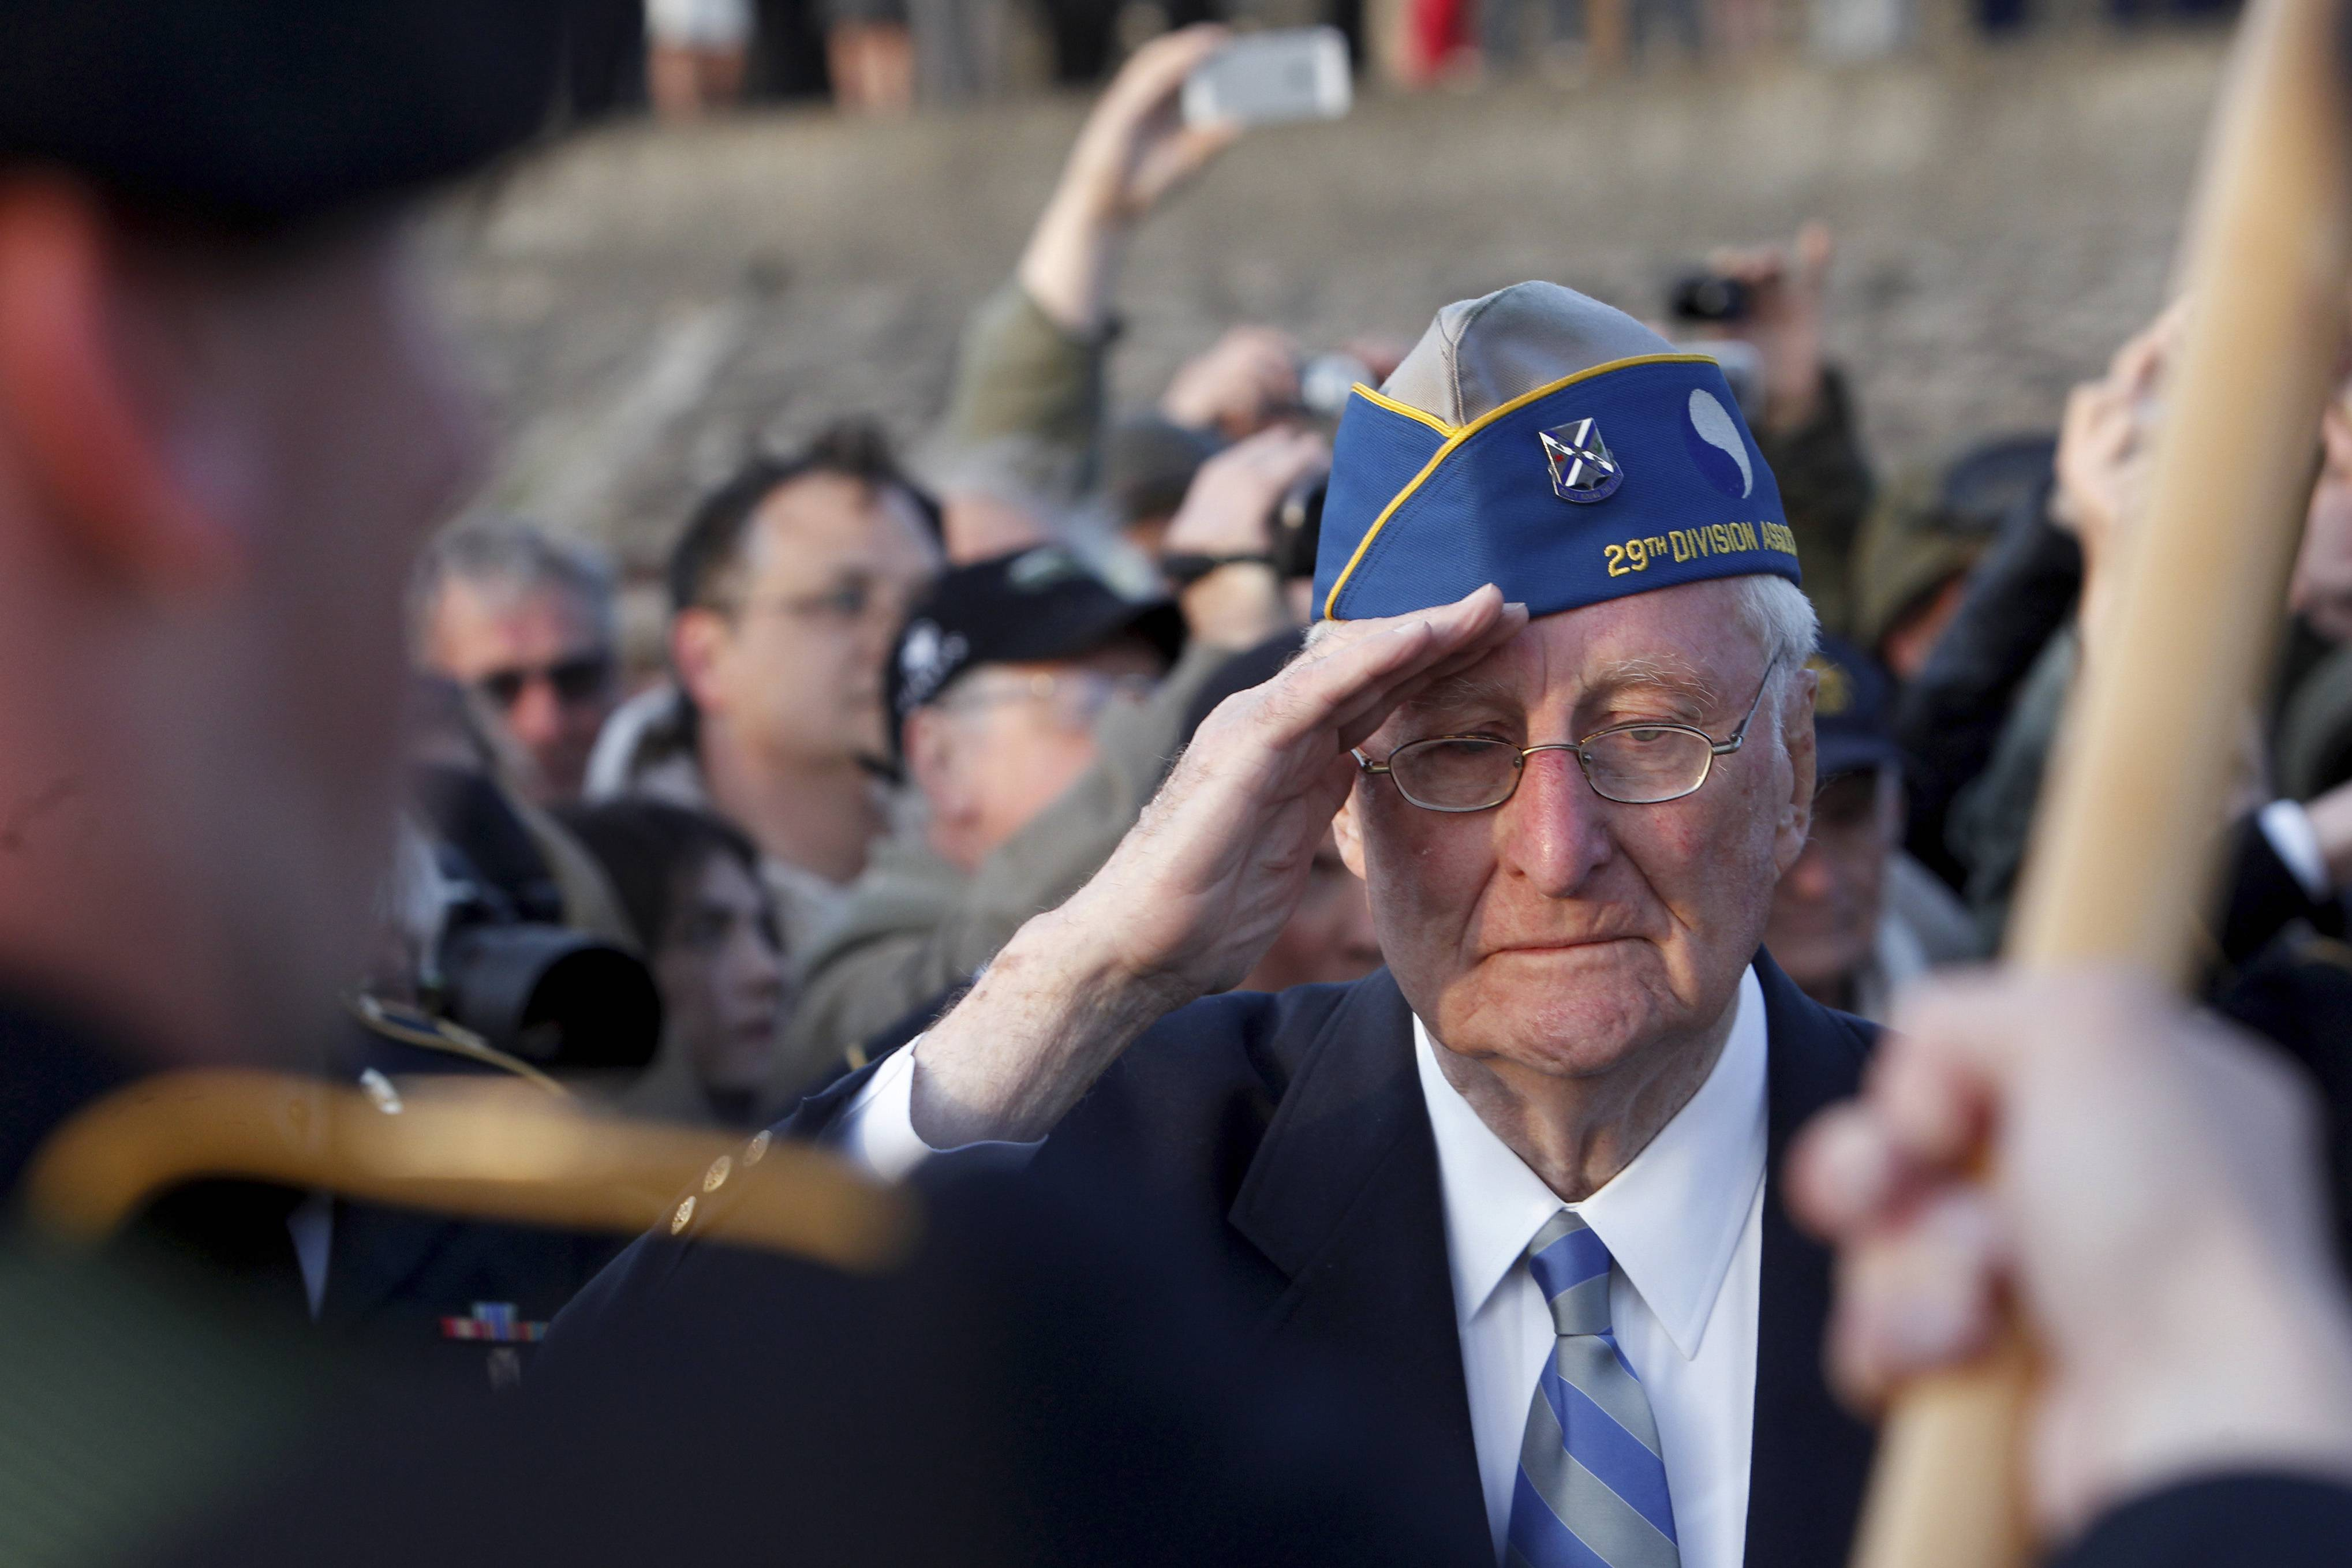 World War II veteran of the U.S. 29th Infantry Division, Morley Piper, 90, Mass., salutes during a D-Day commemoration, on Omaha Beach in Vierville Sur Mer, western France, Friday June 6, 2014.